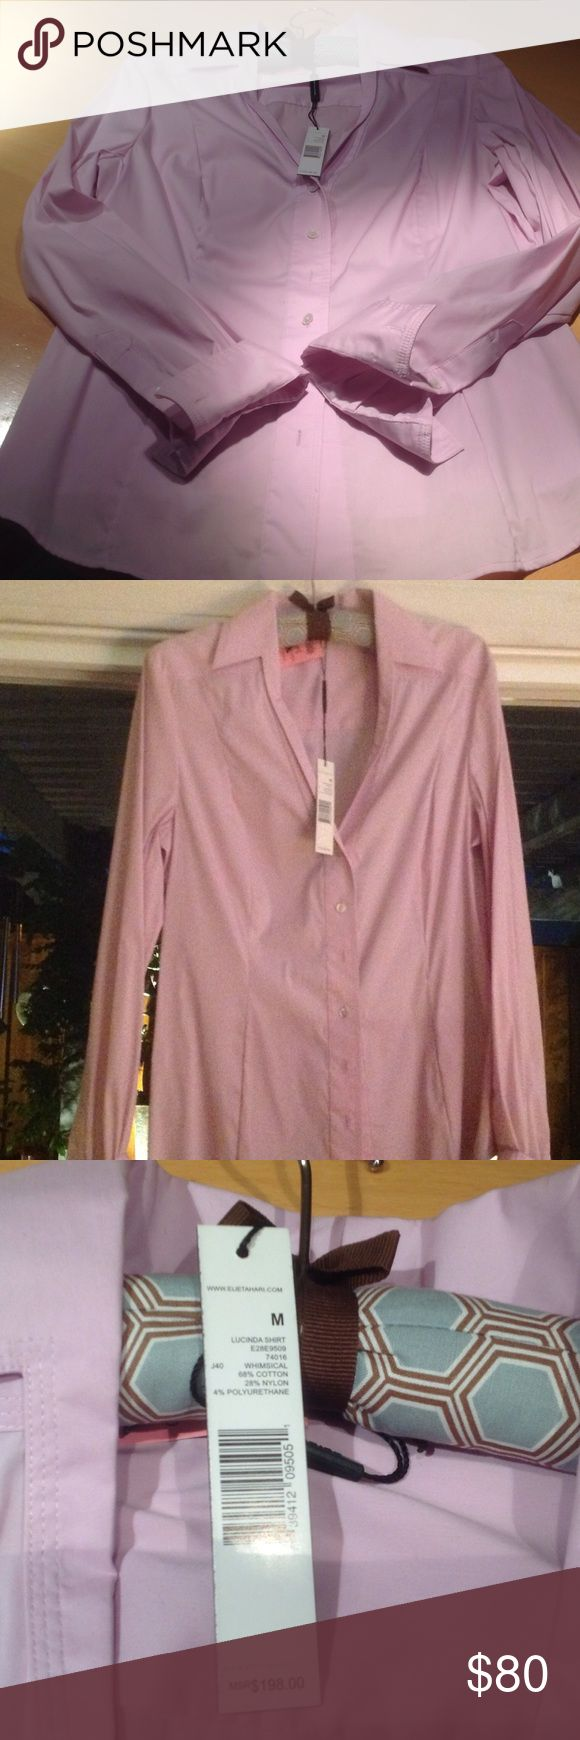 Stylish Blouse High quality slim fit Blouse. Very light violet color. 68% Coton.and 28% Nylon. Has some stretch in it. Deep V-cut. Great for office or any other occasion. Will nicely complement skinny pants/jeans. Elie Tahari Tops Blouses